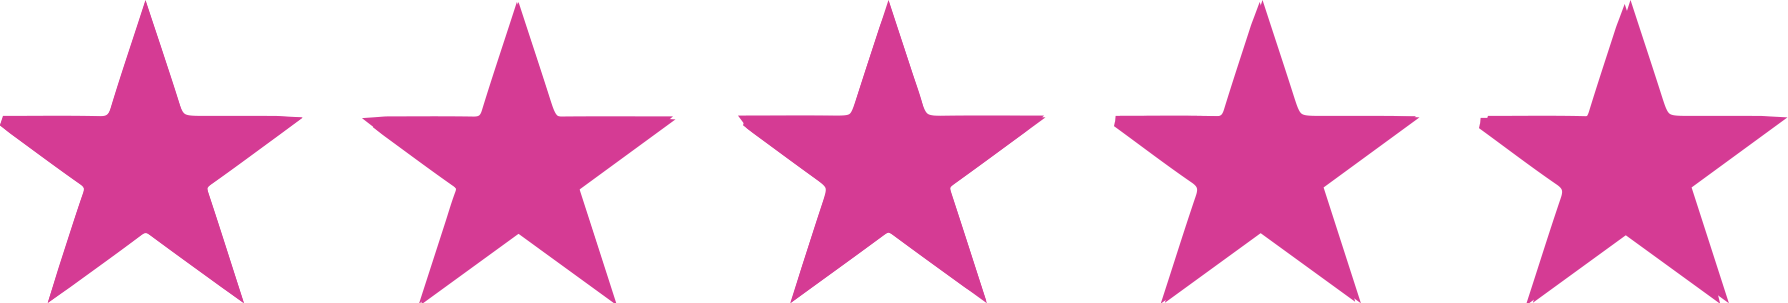 5 star rating pink png. Full colour quality business